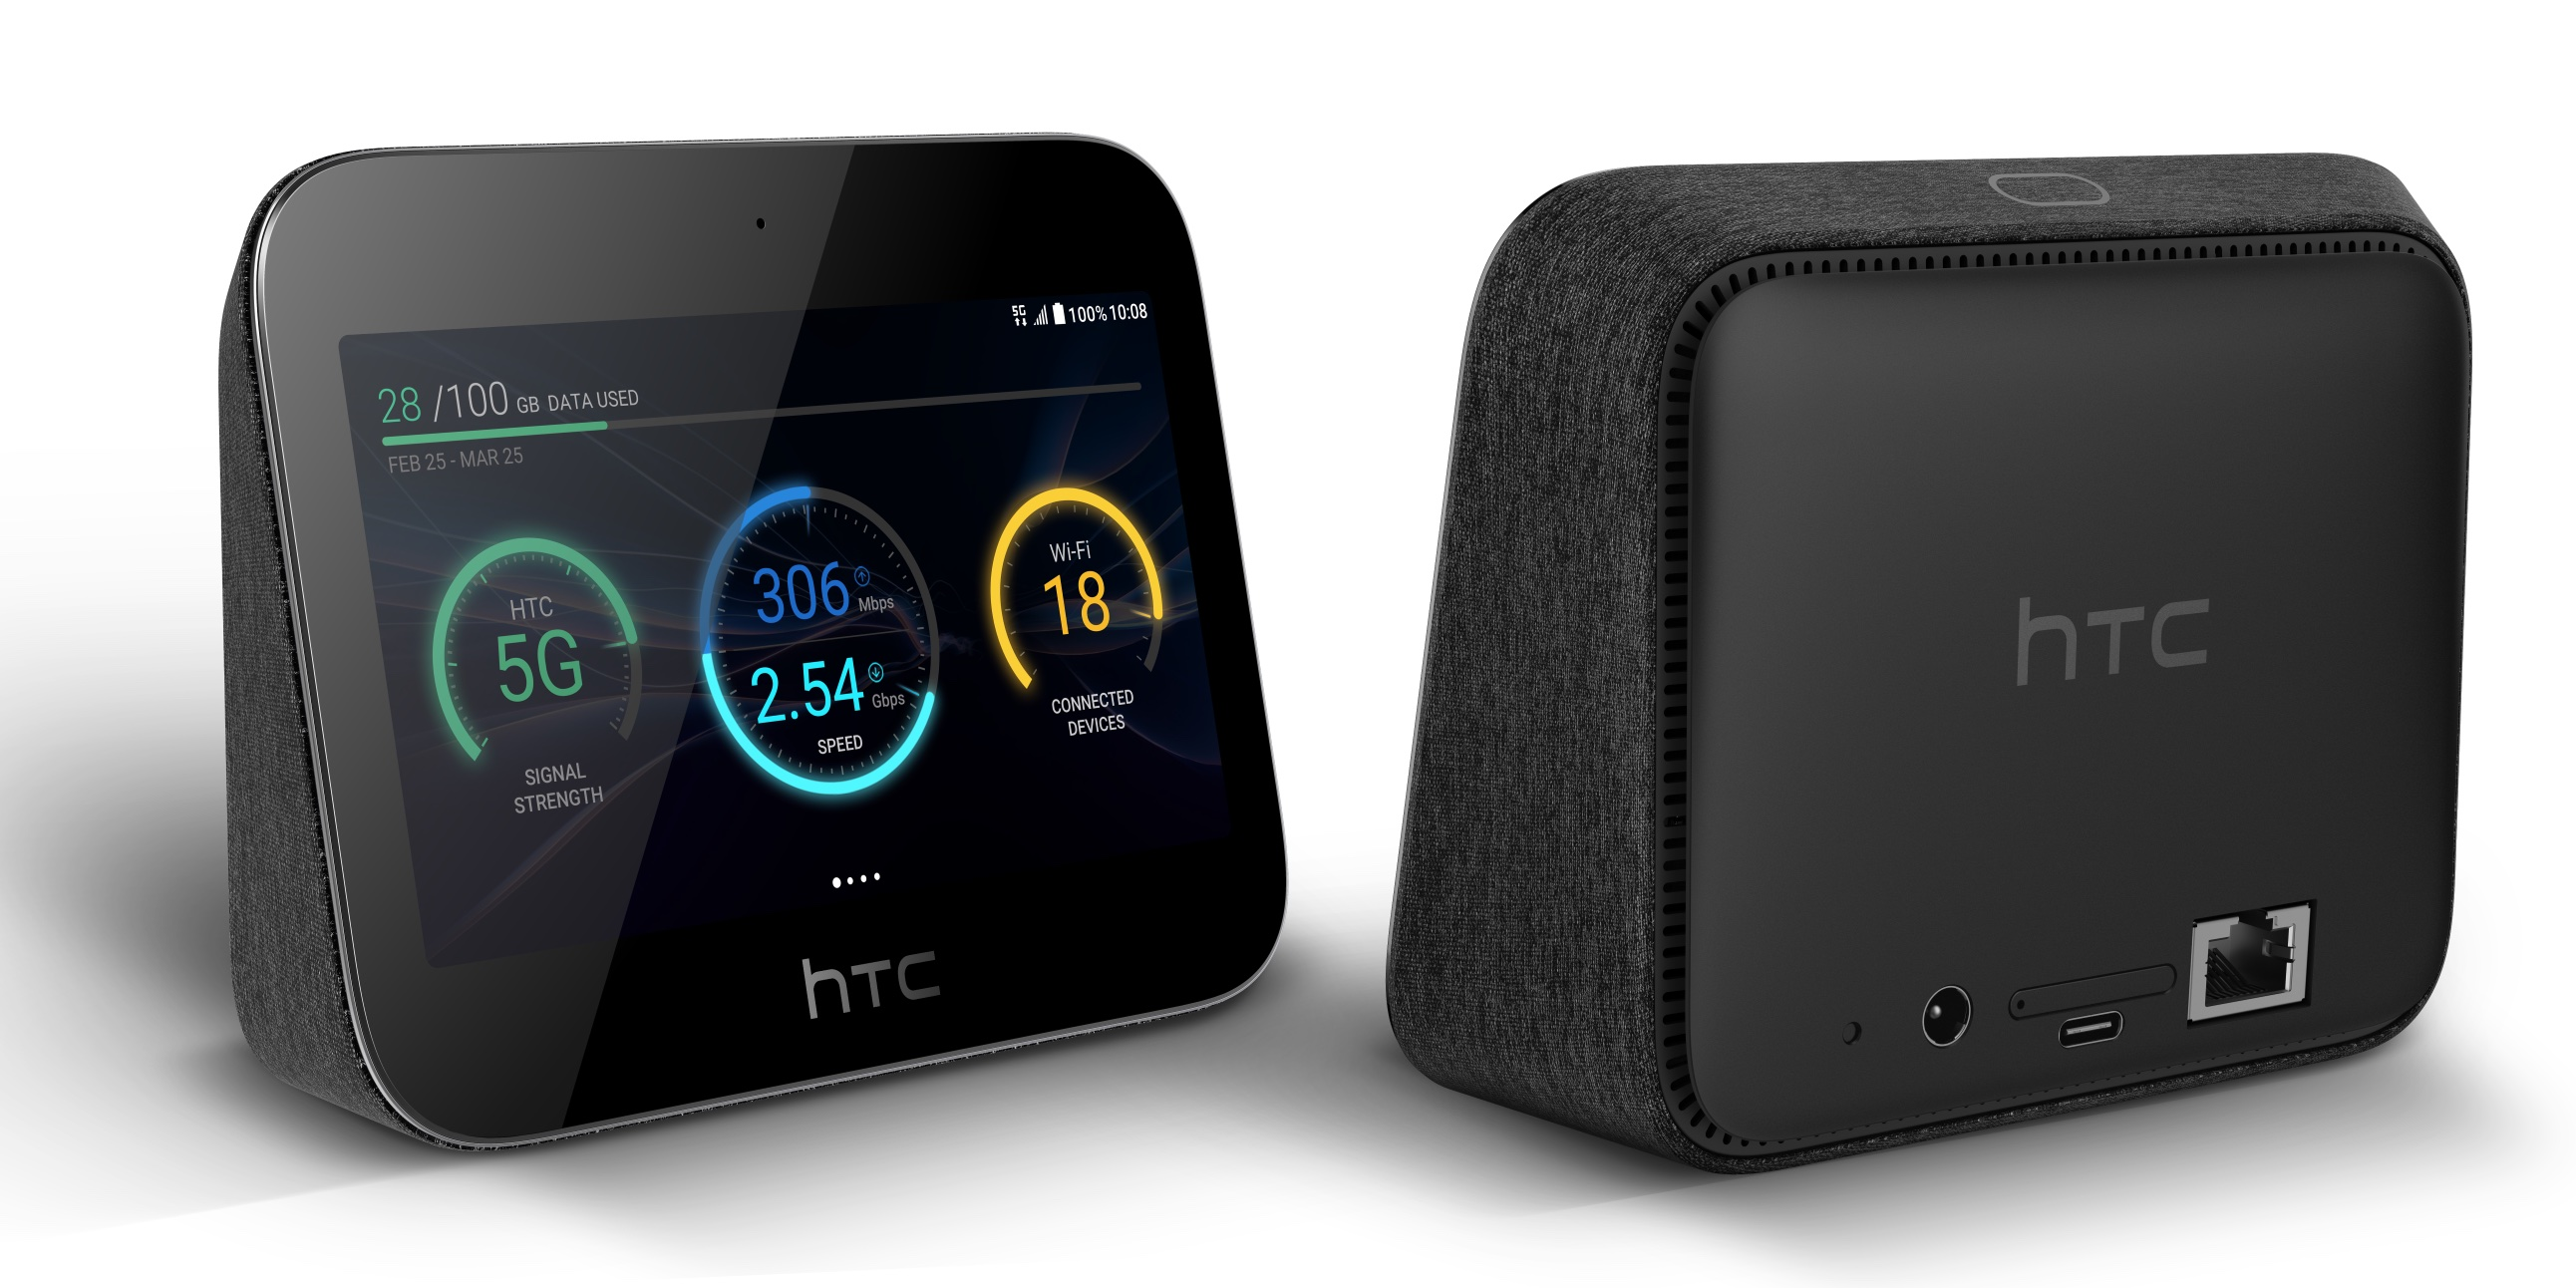 HTC 5G Hub will launch on Sprint's 2 5GHz network in spring 2019